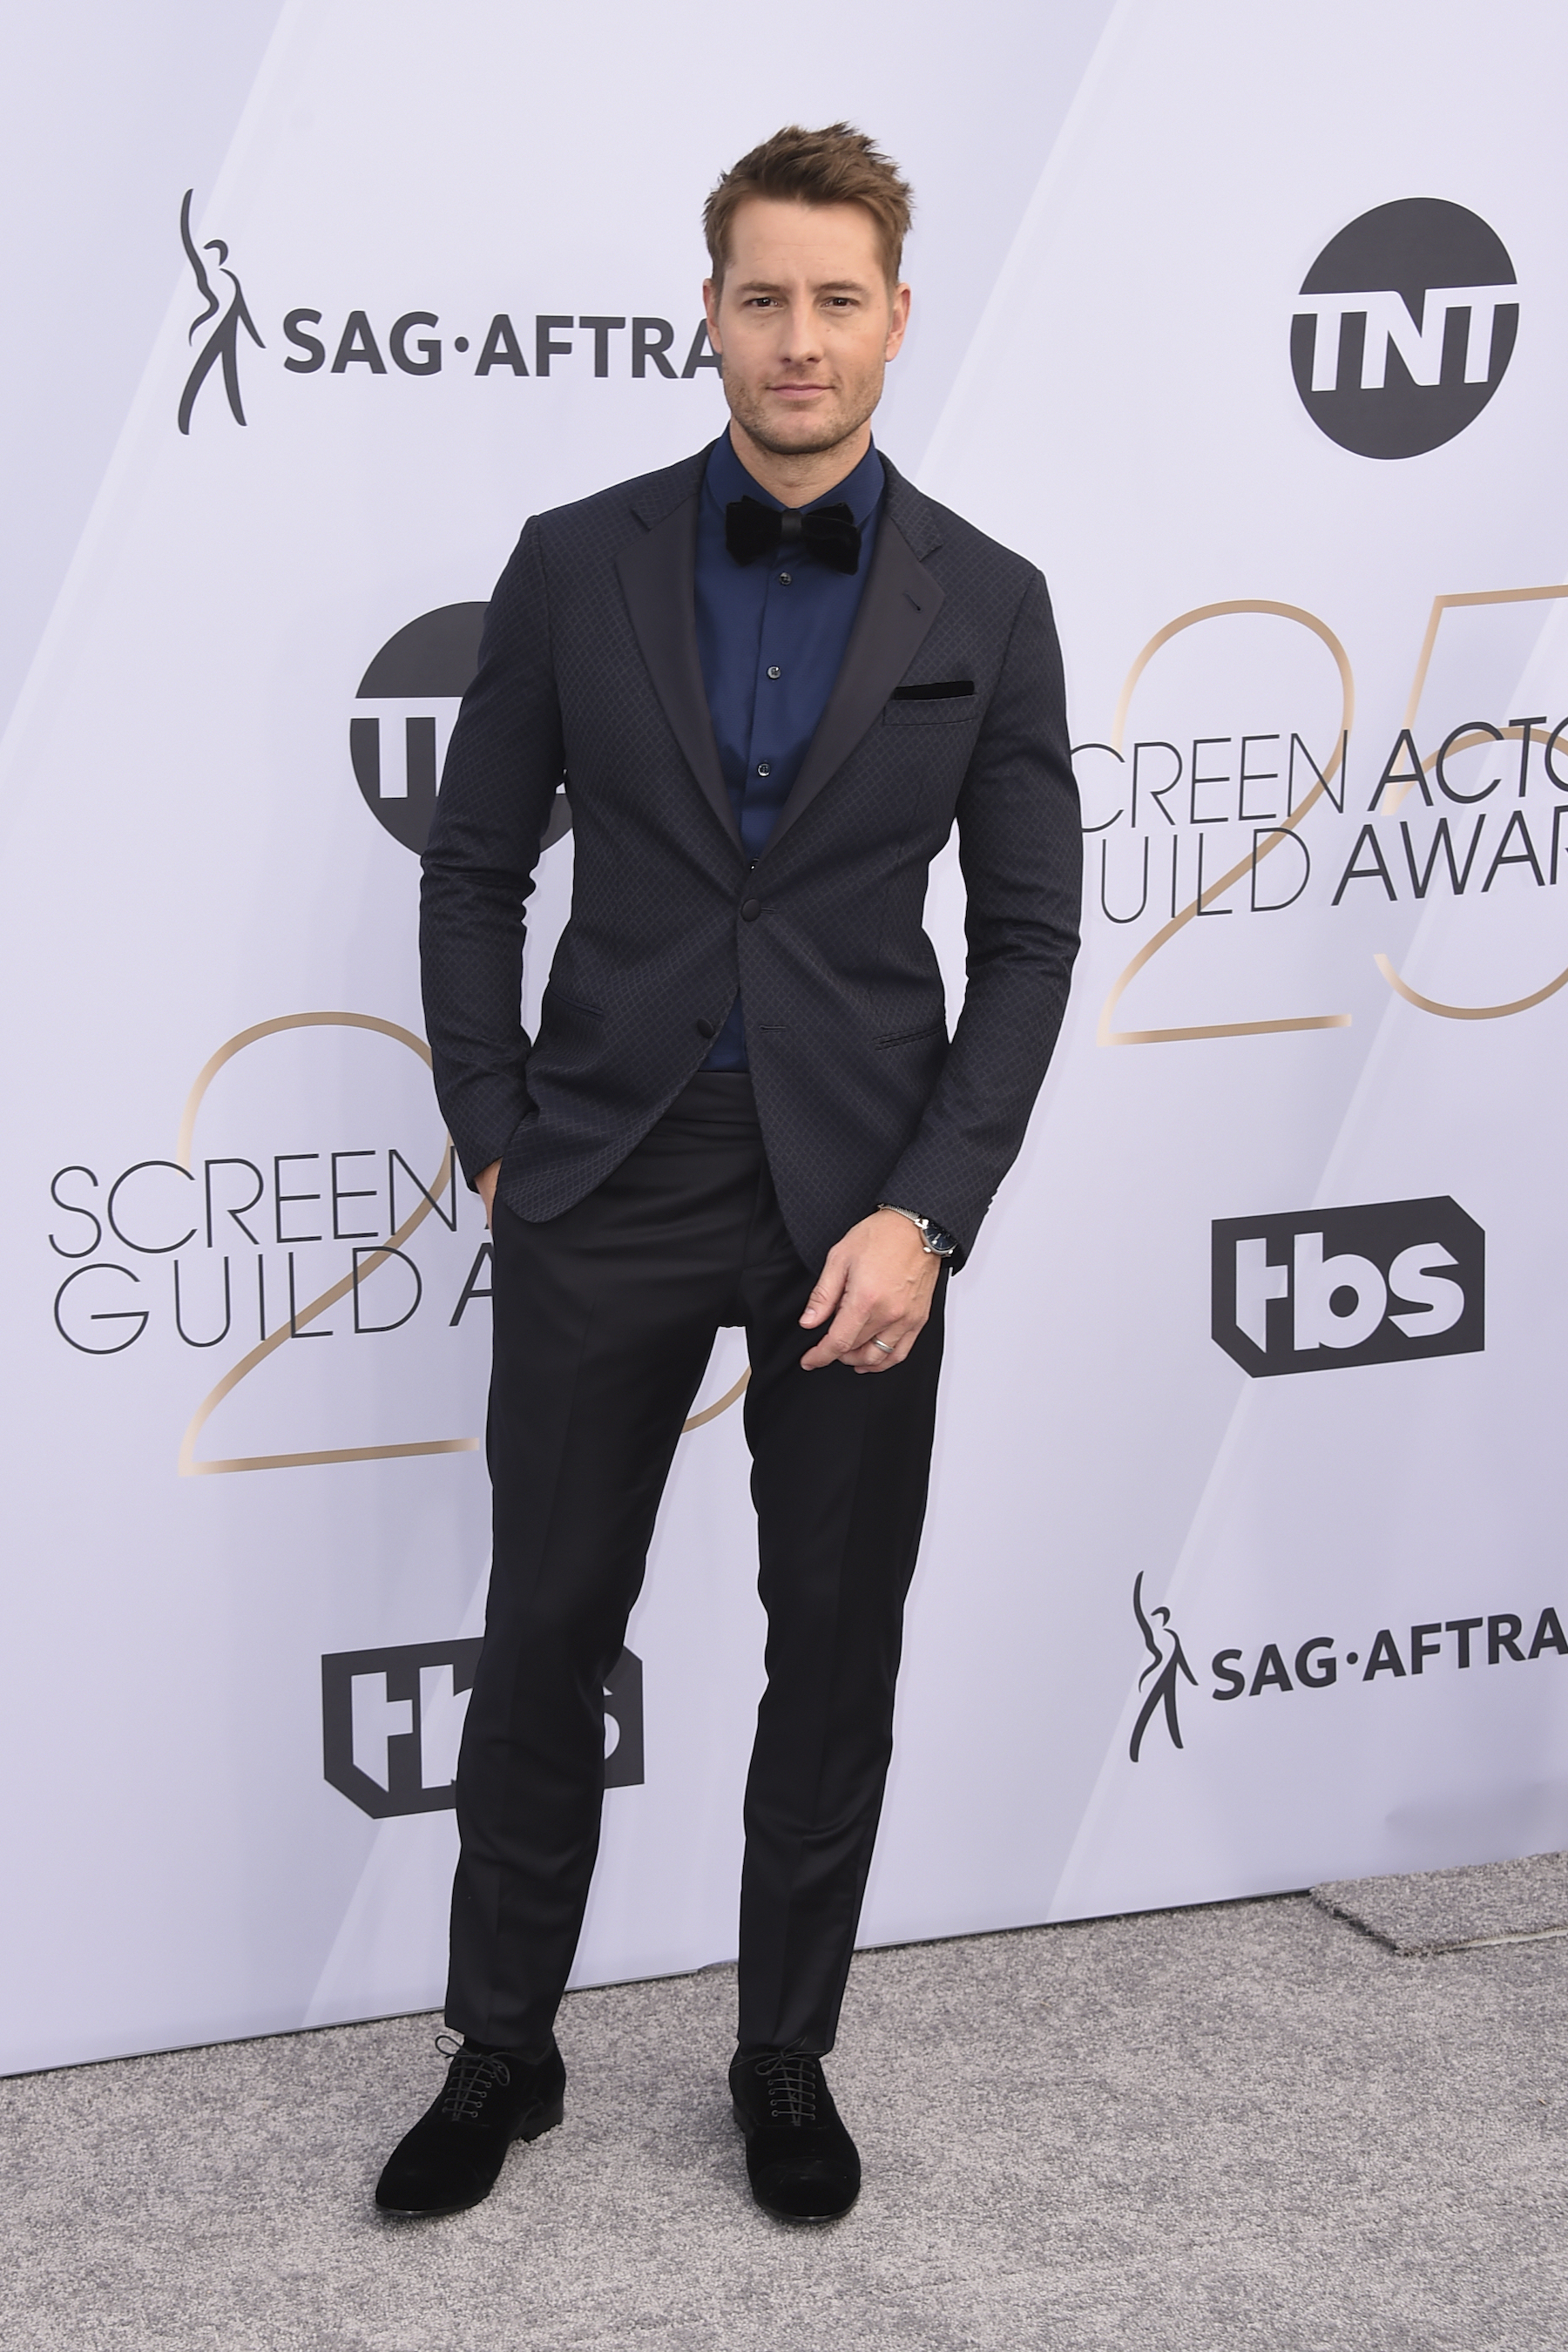 <div class='meta'><div class='origin-logo' data-origin='AP'></div><span class='caption-text' data-credit='Jordan Strauss/Invision/AP'>Justin Hartley arrives at the 25th annual Screen Actors Guild Awards at the Shrine Auditorium & Expo Hall on Sunday, Jan. 27, 2019, in Los Angeles.</span></div>